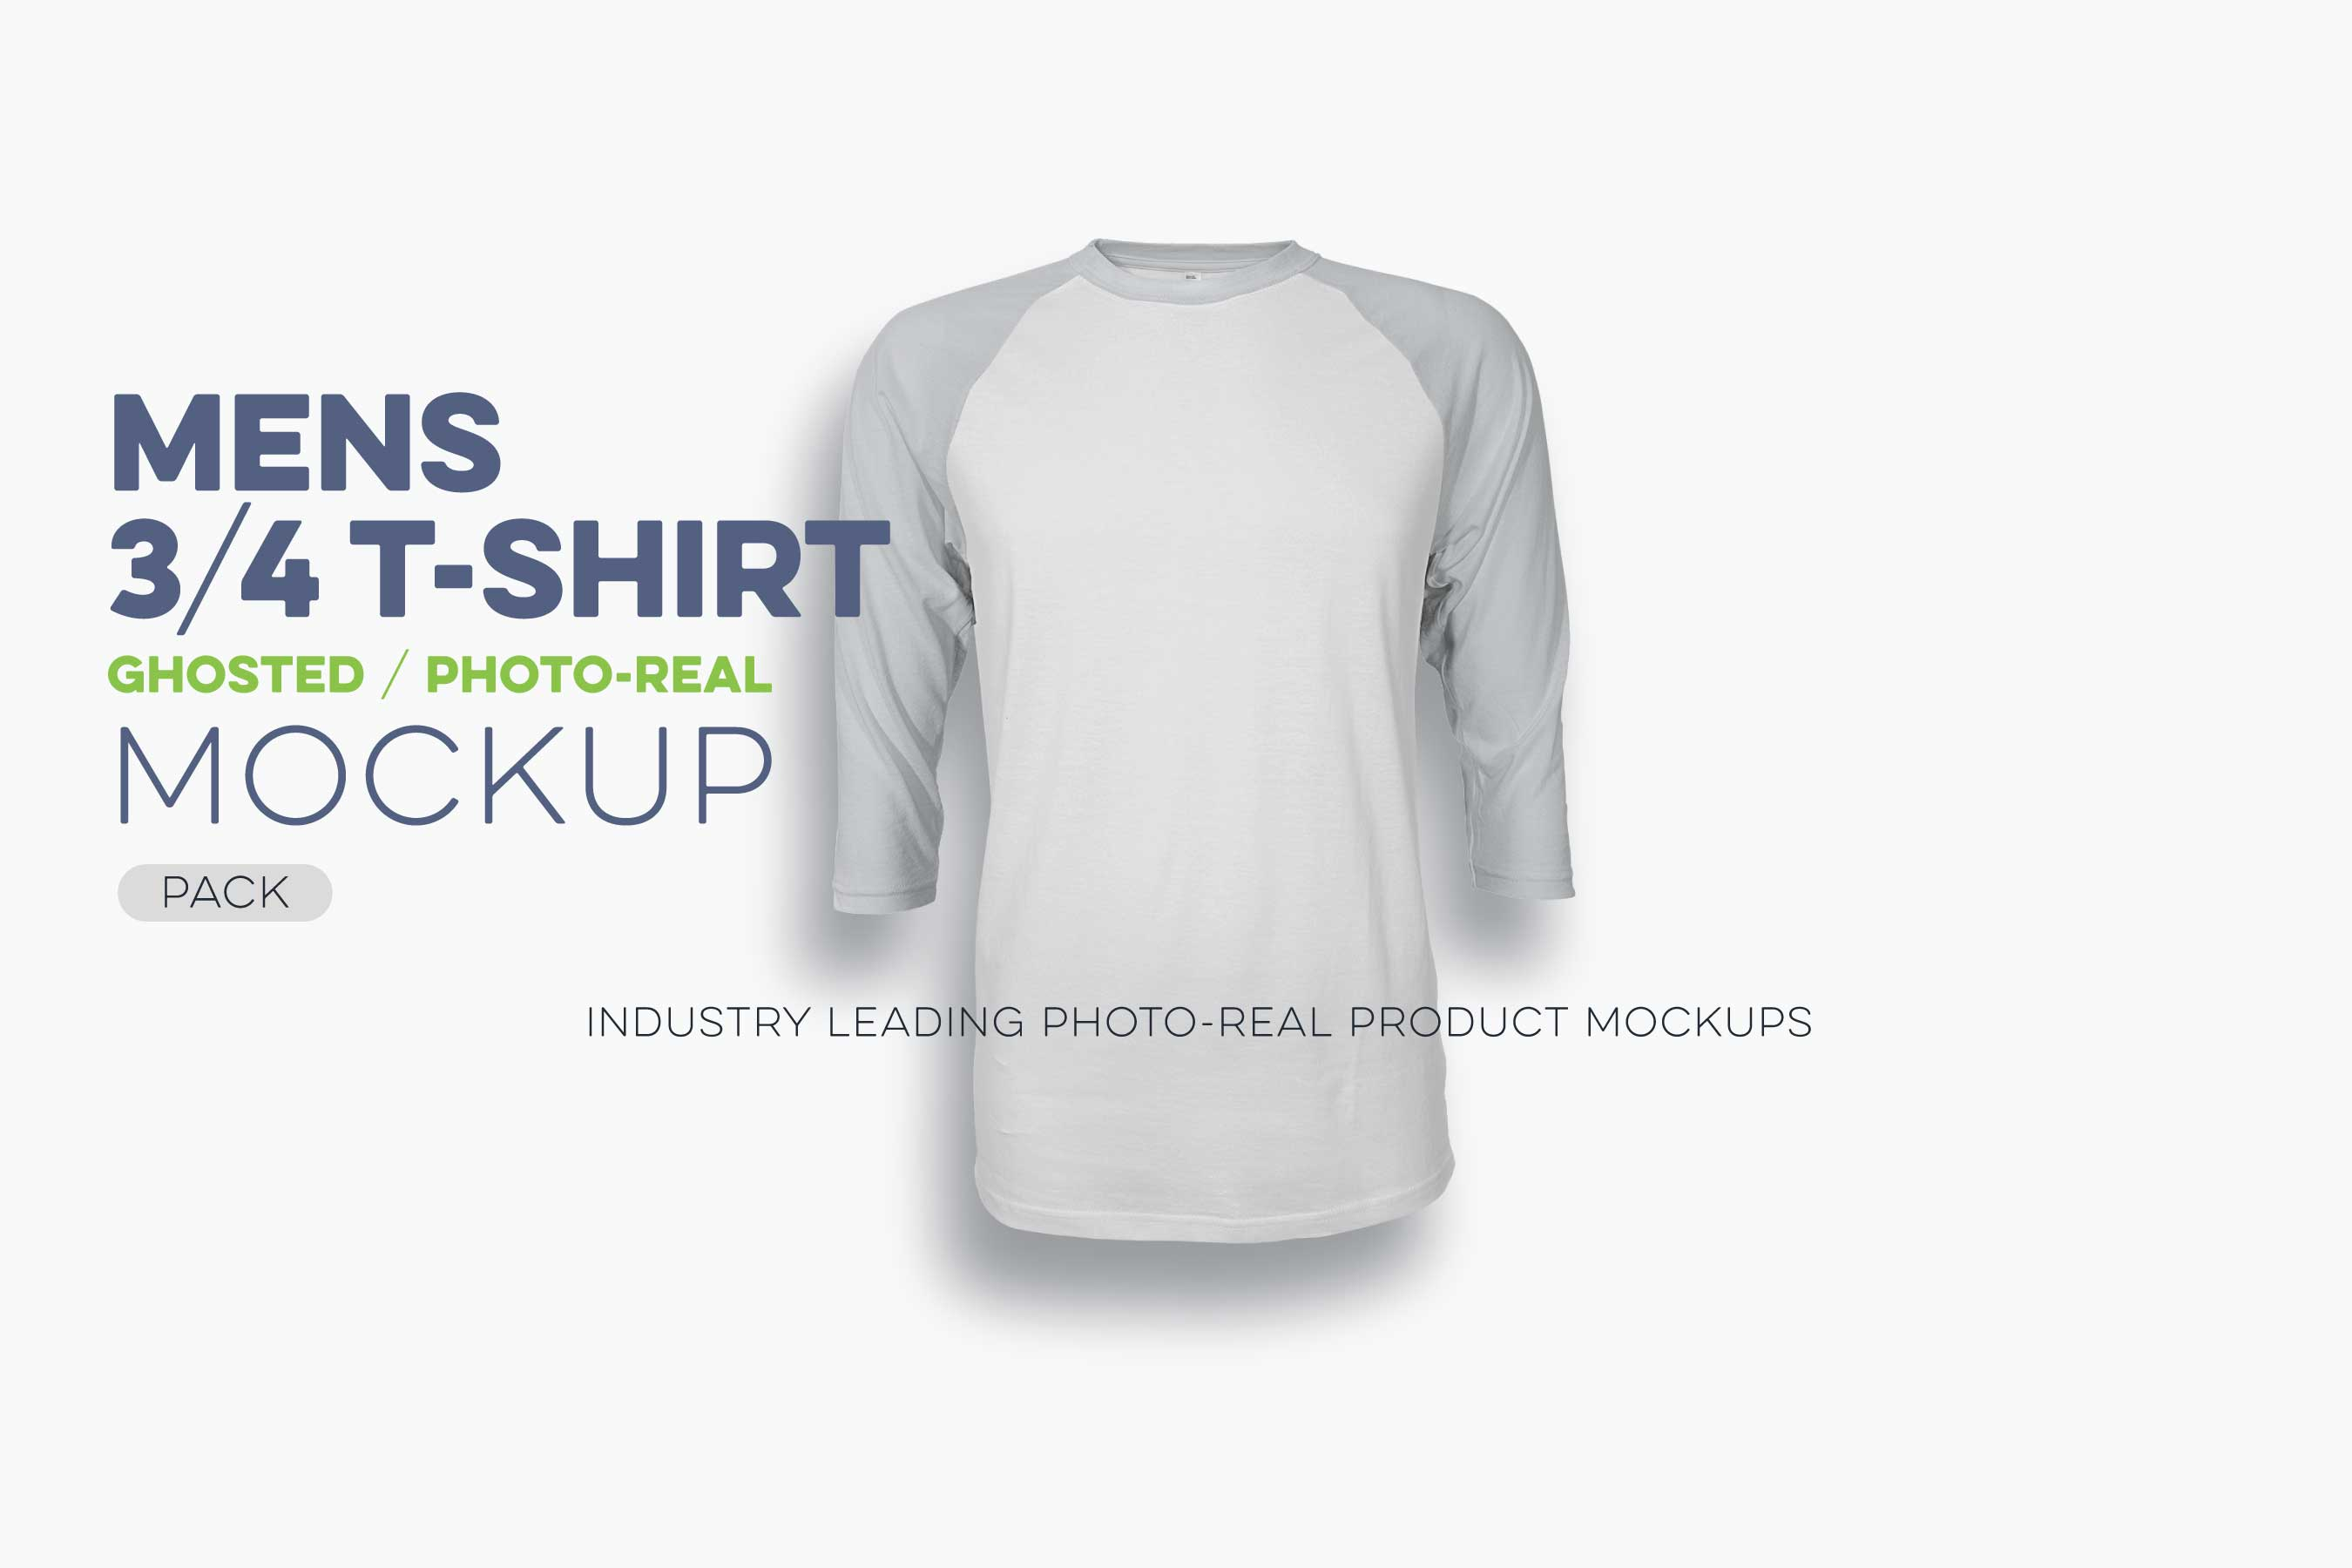 mens ghosted 3-4 sleeve t-shirt mockup template 2